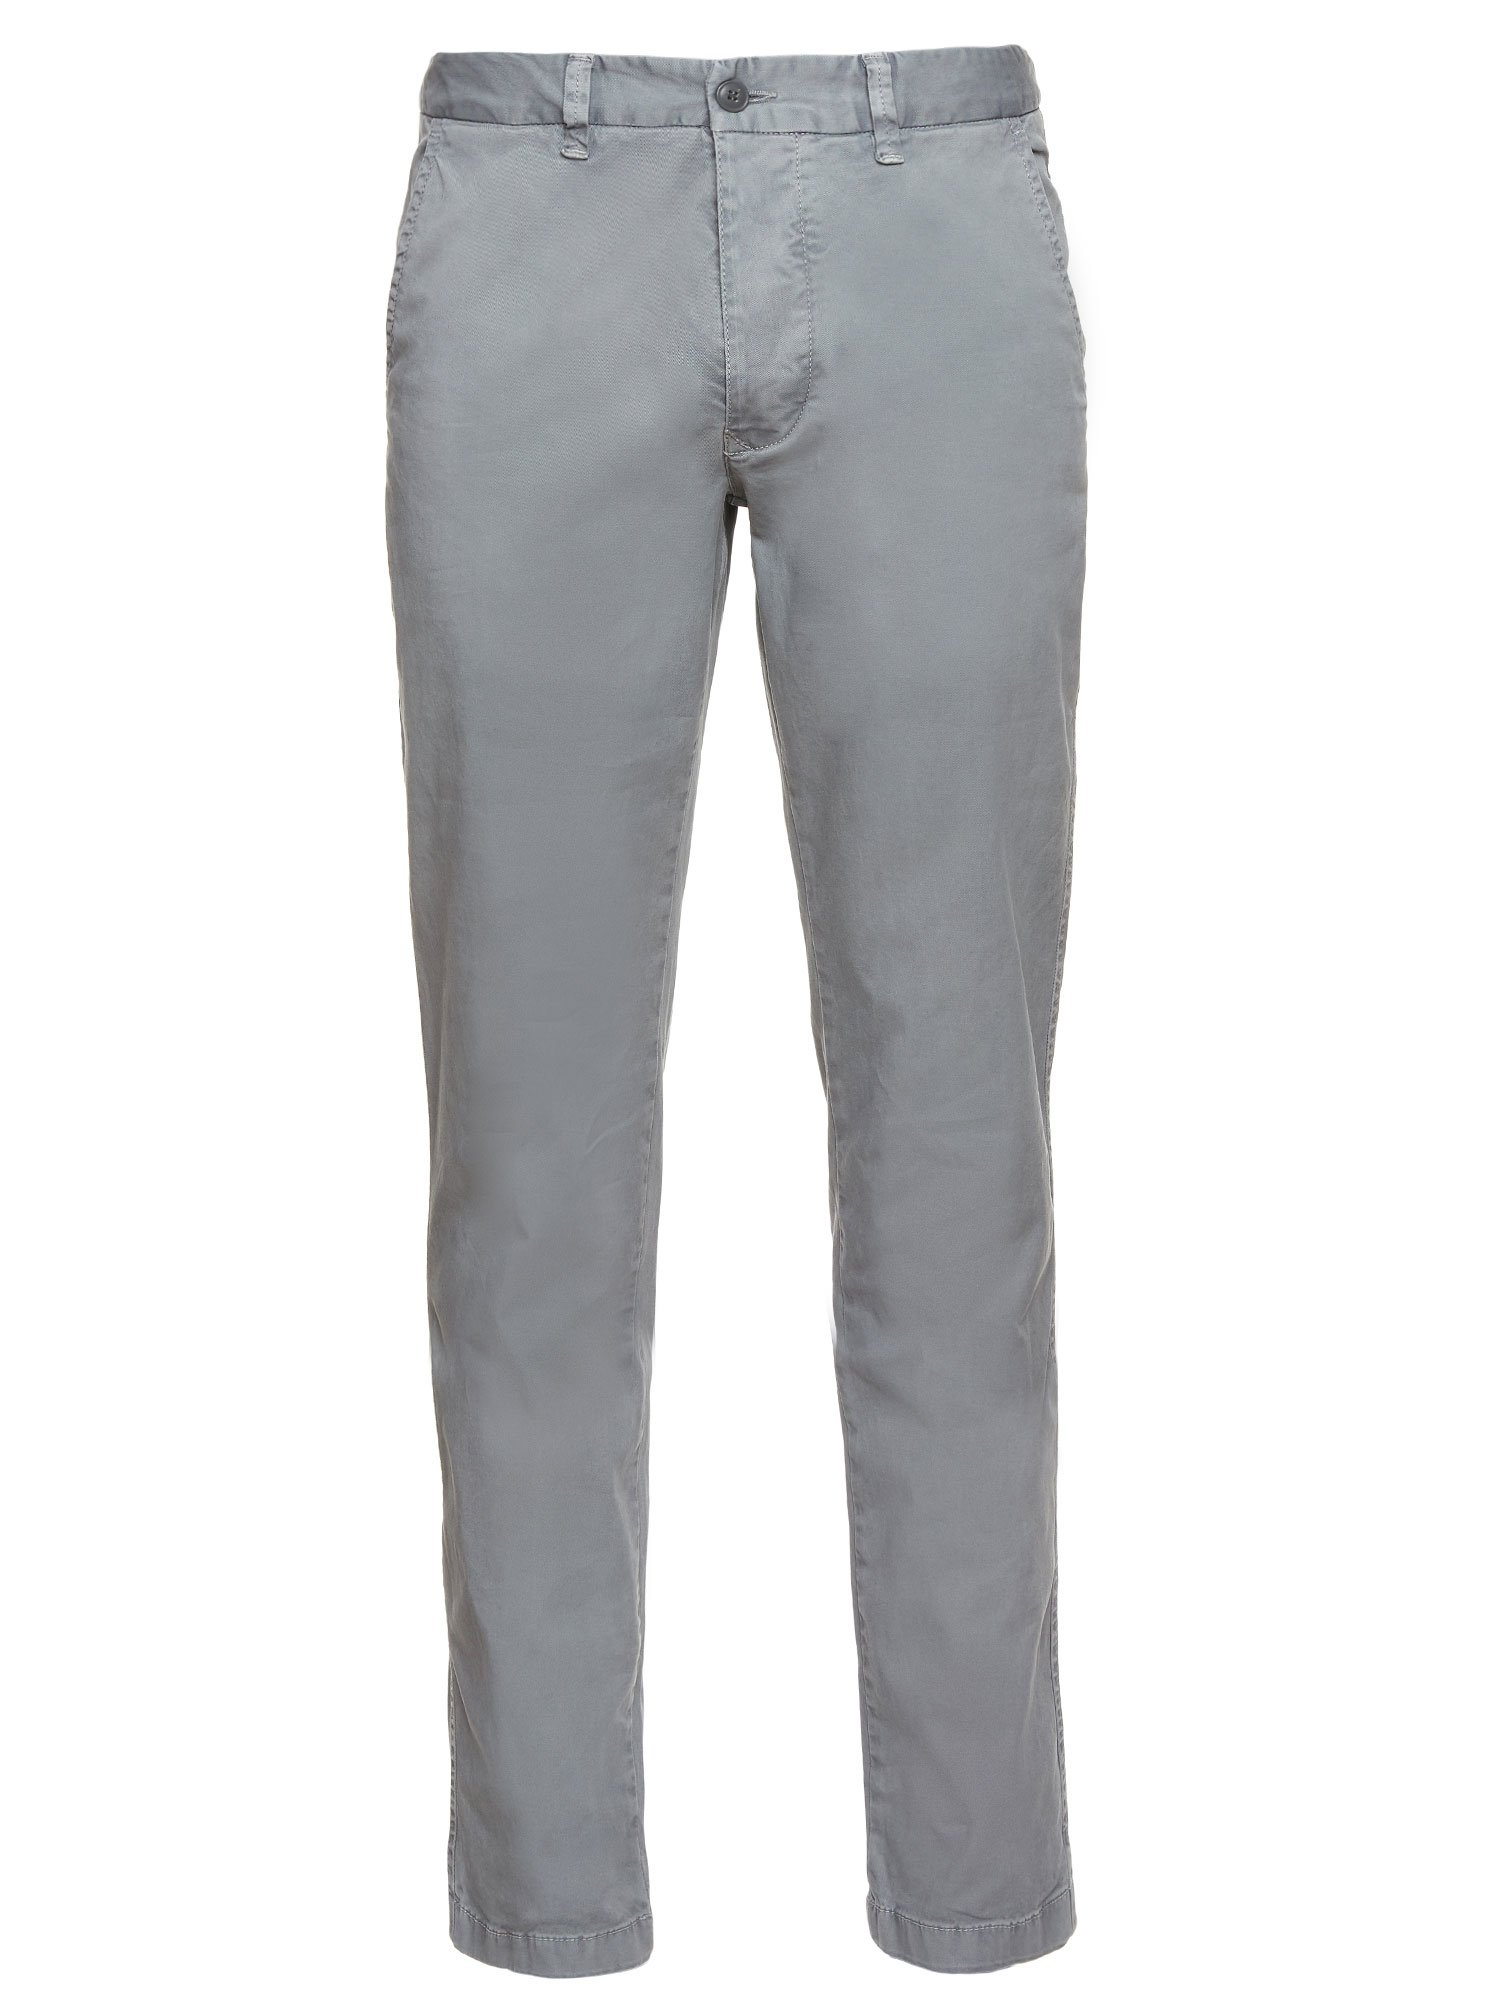 LONG GABARDINE TROUSERS - Blauer